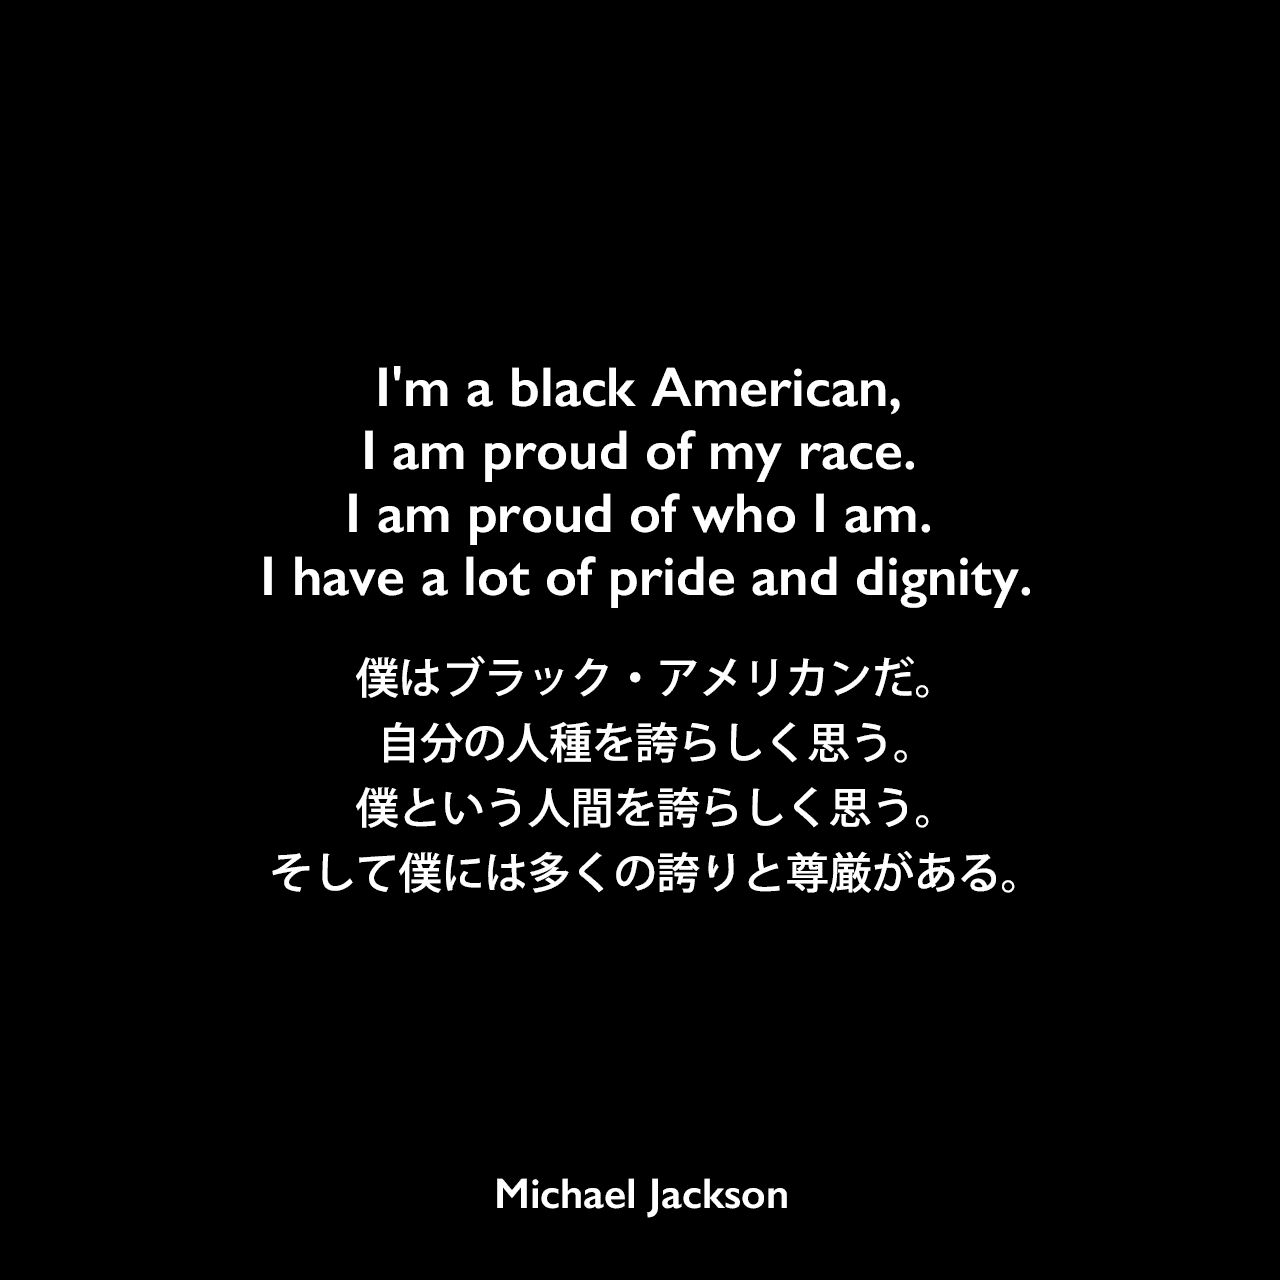 I'm a black American, I am proud of my race. I am proud of who I am. I have a lot of pride and dignity.僕はブラック・アメリカンだ。自分の人種を誇らしく思う。僕という人間を誇らしく思う。そして僕には多くの誇りと尊厳がある。Michael Jackson